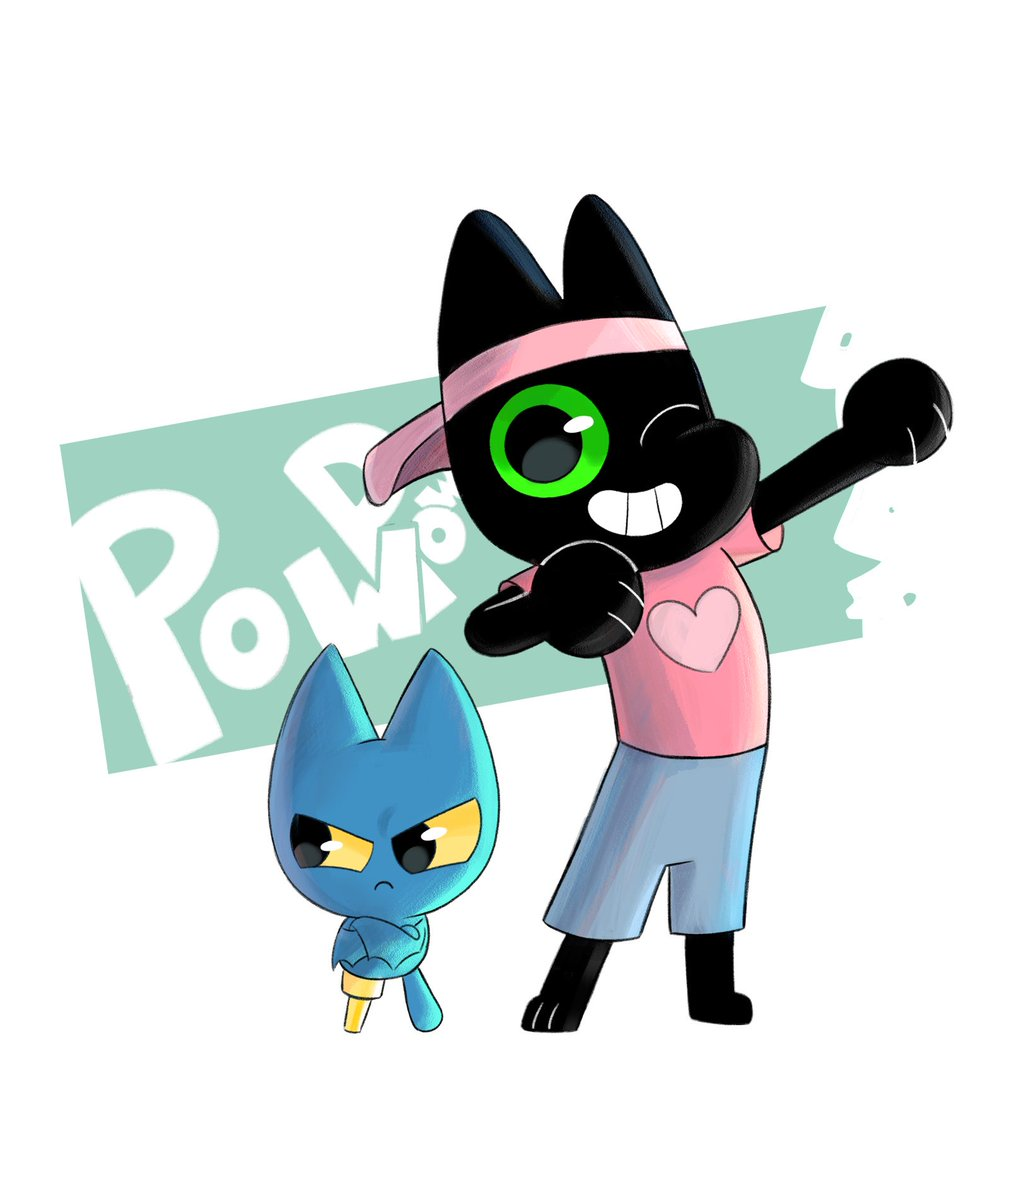 Storyartists Looking For Work On Twitter Pow Pow Its Mao Mao This Episode Made Us Cry Maomaoheroesofpureheart Maomao Adorabat Badgerclops Art Animation Art Arte Cat Twin Twins Https T Co Adyuznpnx6 When adorabat's dad is scared that working with mao mao and badgerclops is too dangerous, he forbids her from seeing them. pow pow its mao mao